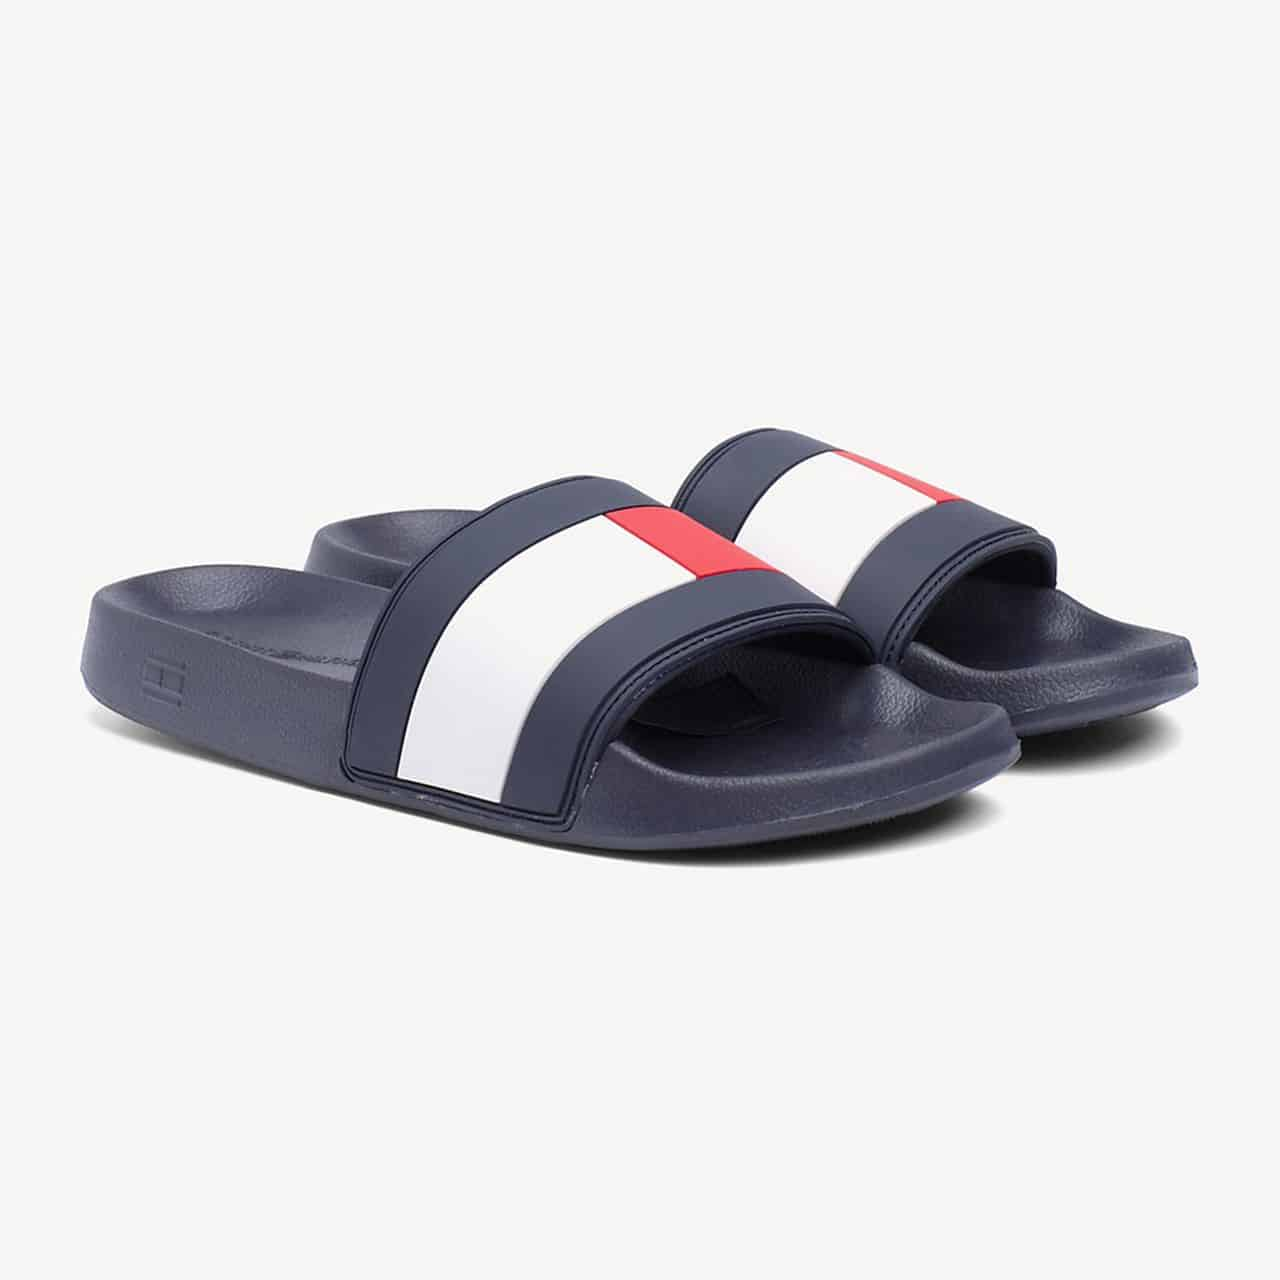 SLAPI ORIGINALI TOMMY HILFIGER ESSENTIAL FLAG POOL - FM0FM02327 020